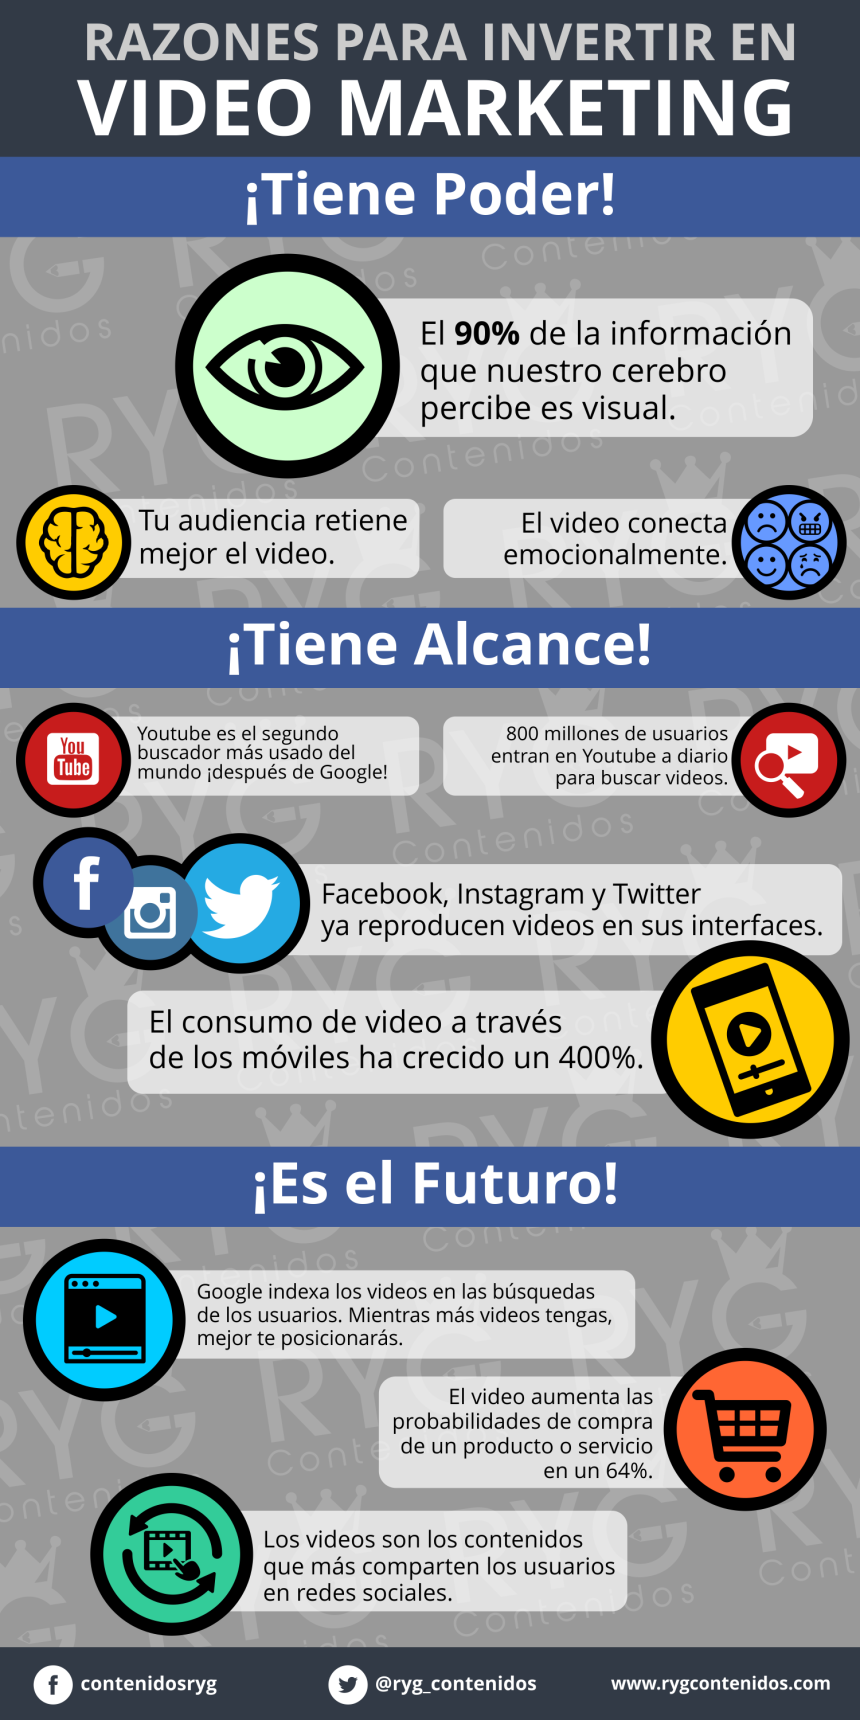 Razones para invertir en Video Marketing